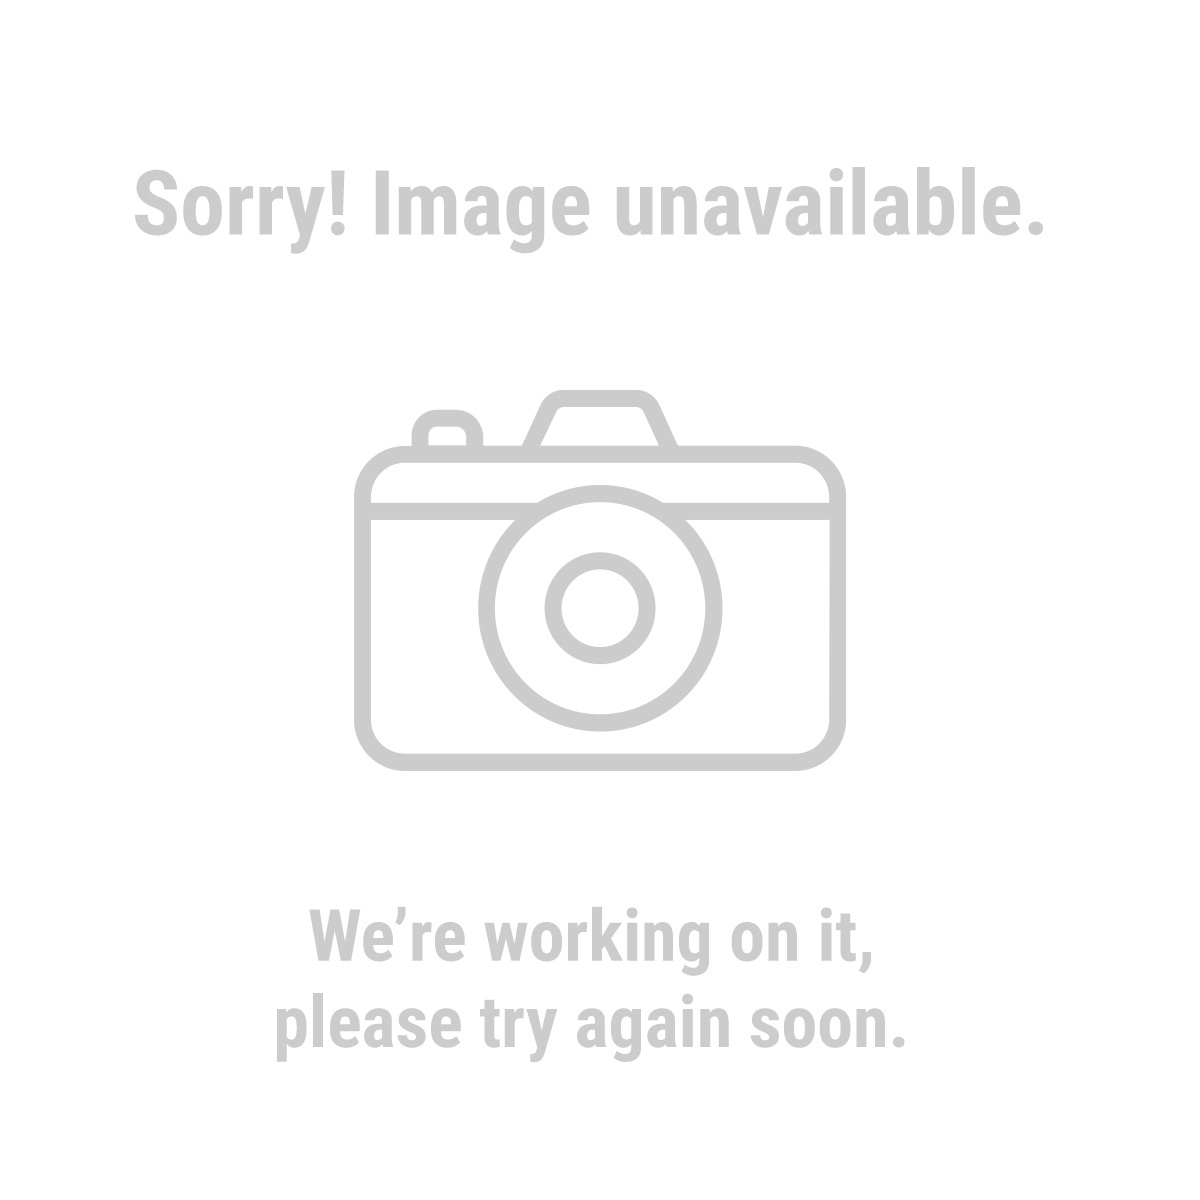 Admiral 62740 7-1/4 in. 4T PCD Fiber Cement Circular Saw Blade